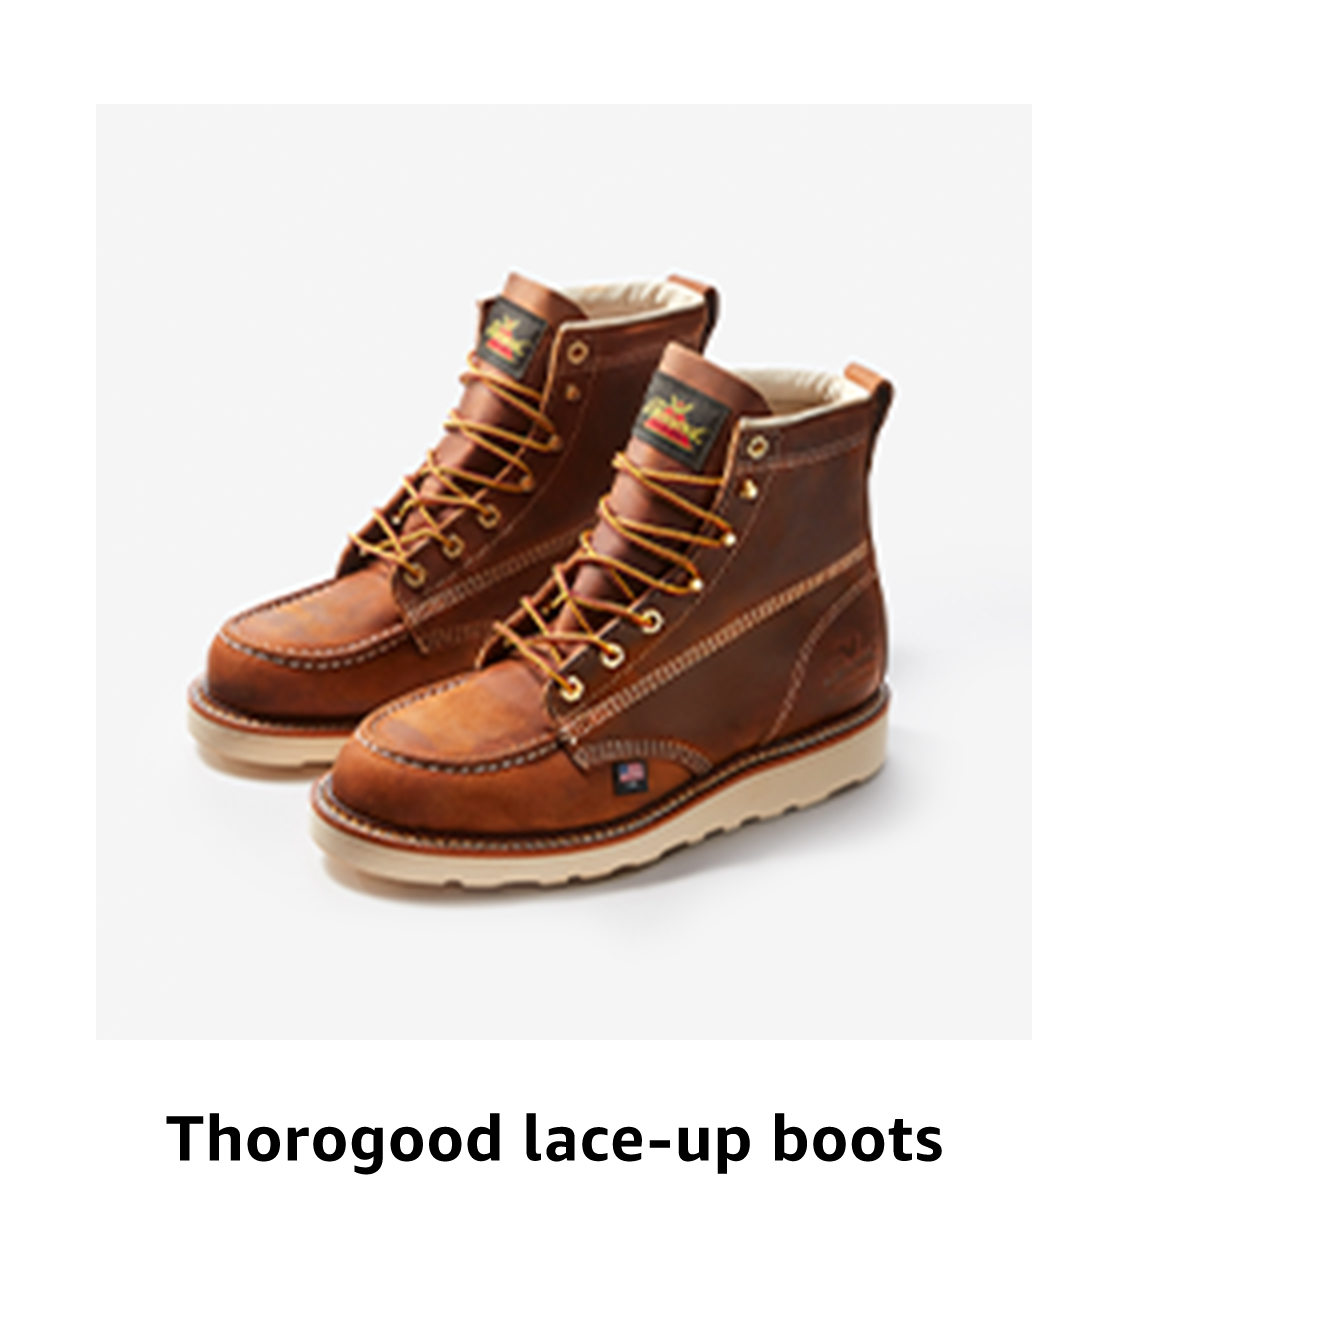 Thorogood lace-up boots